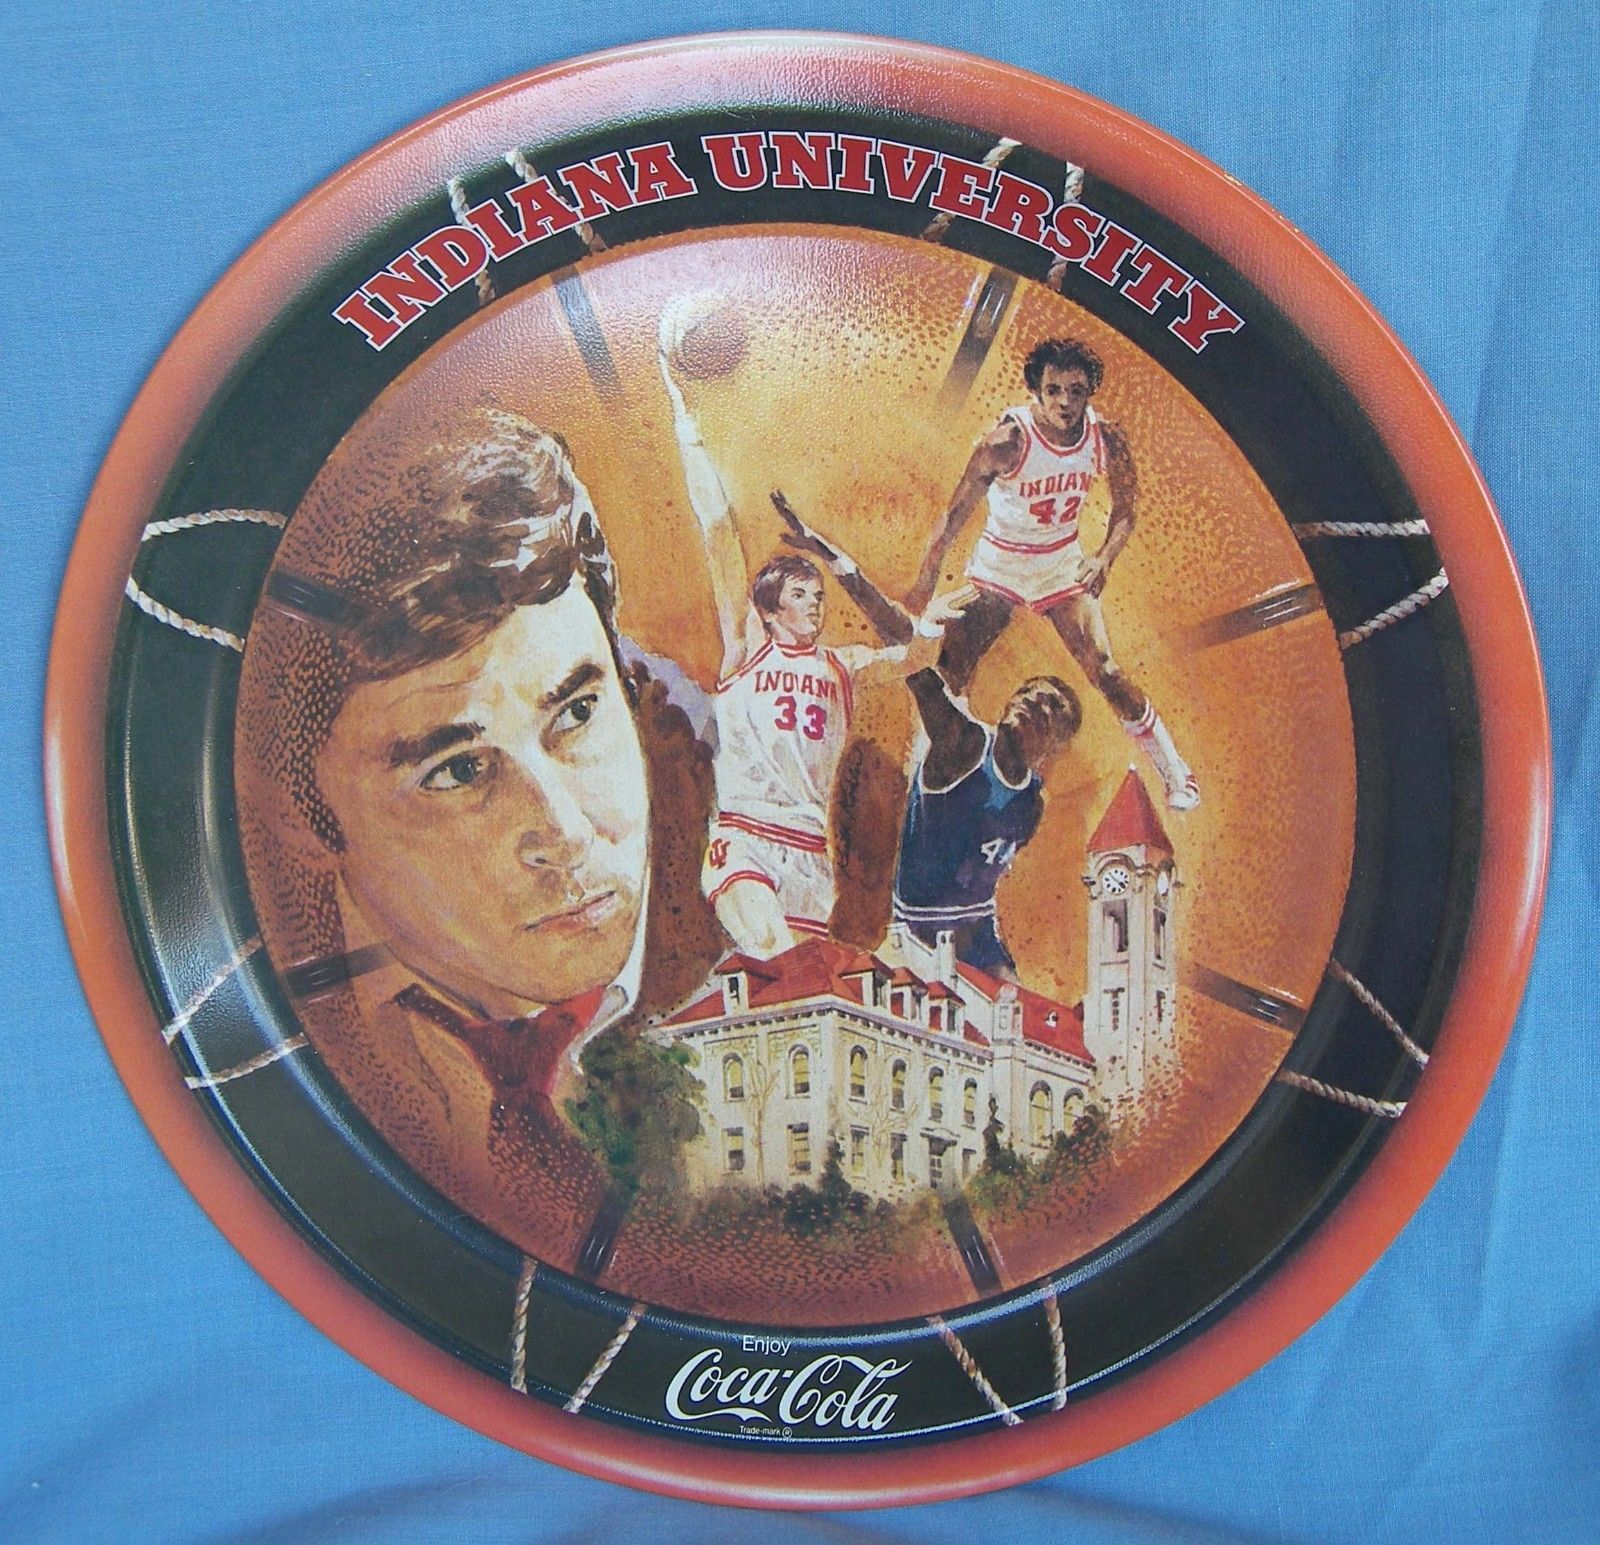 Primary image for Coca Cola Coke Tray 1976 Indiana University NCAA Basketball Championship